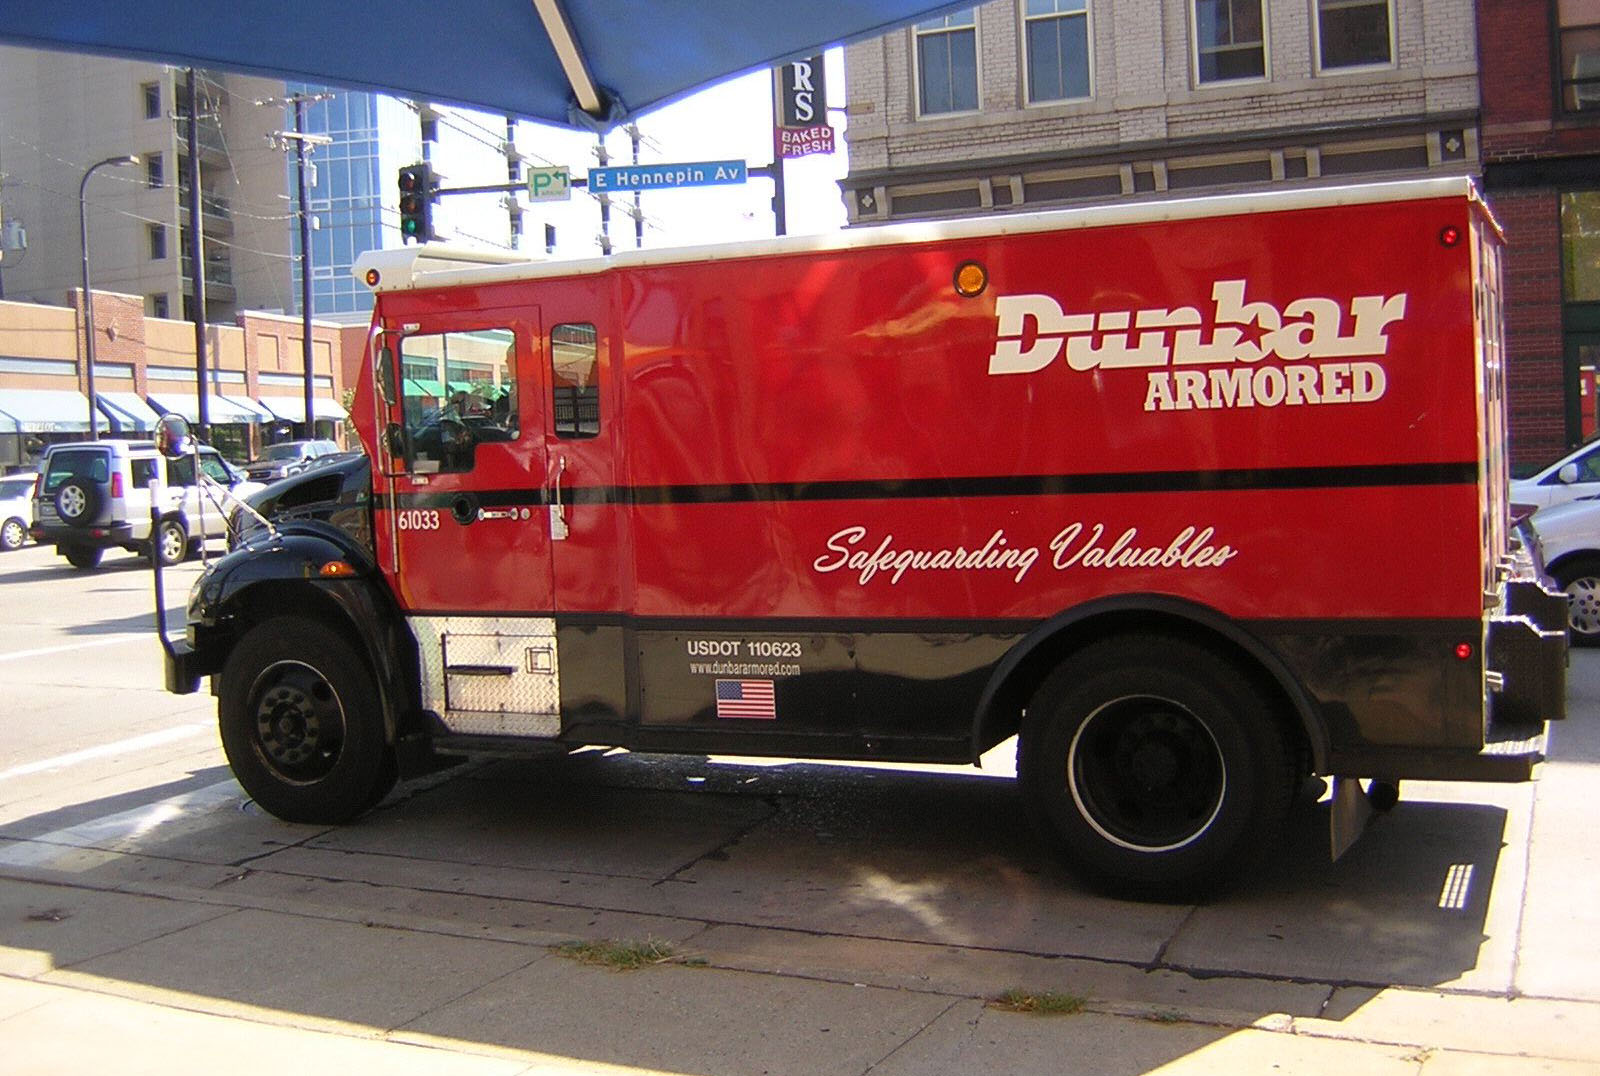 Armored truck carrying cannabis